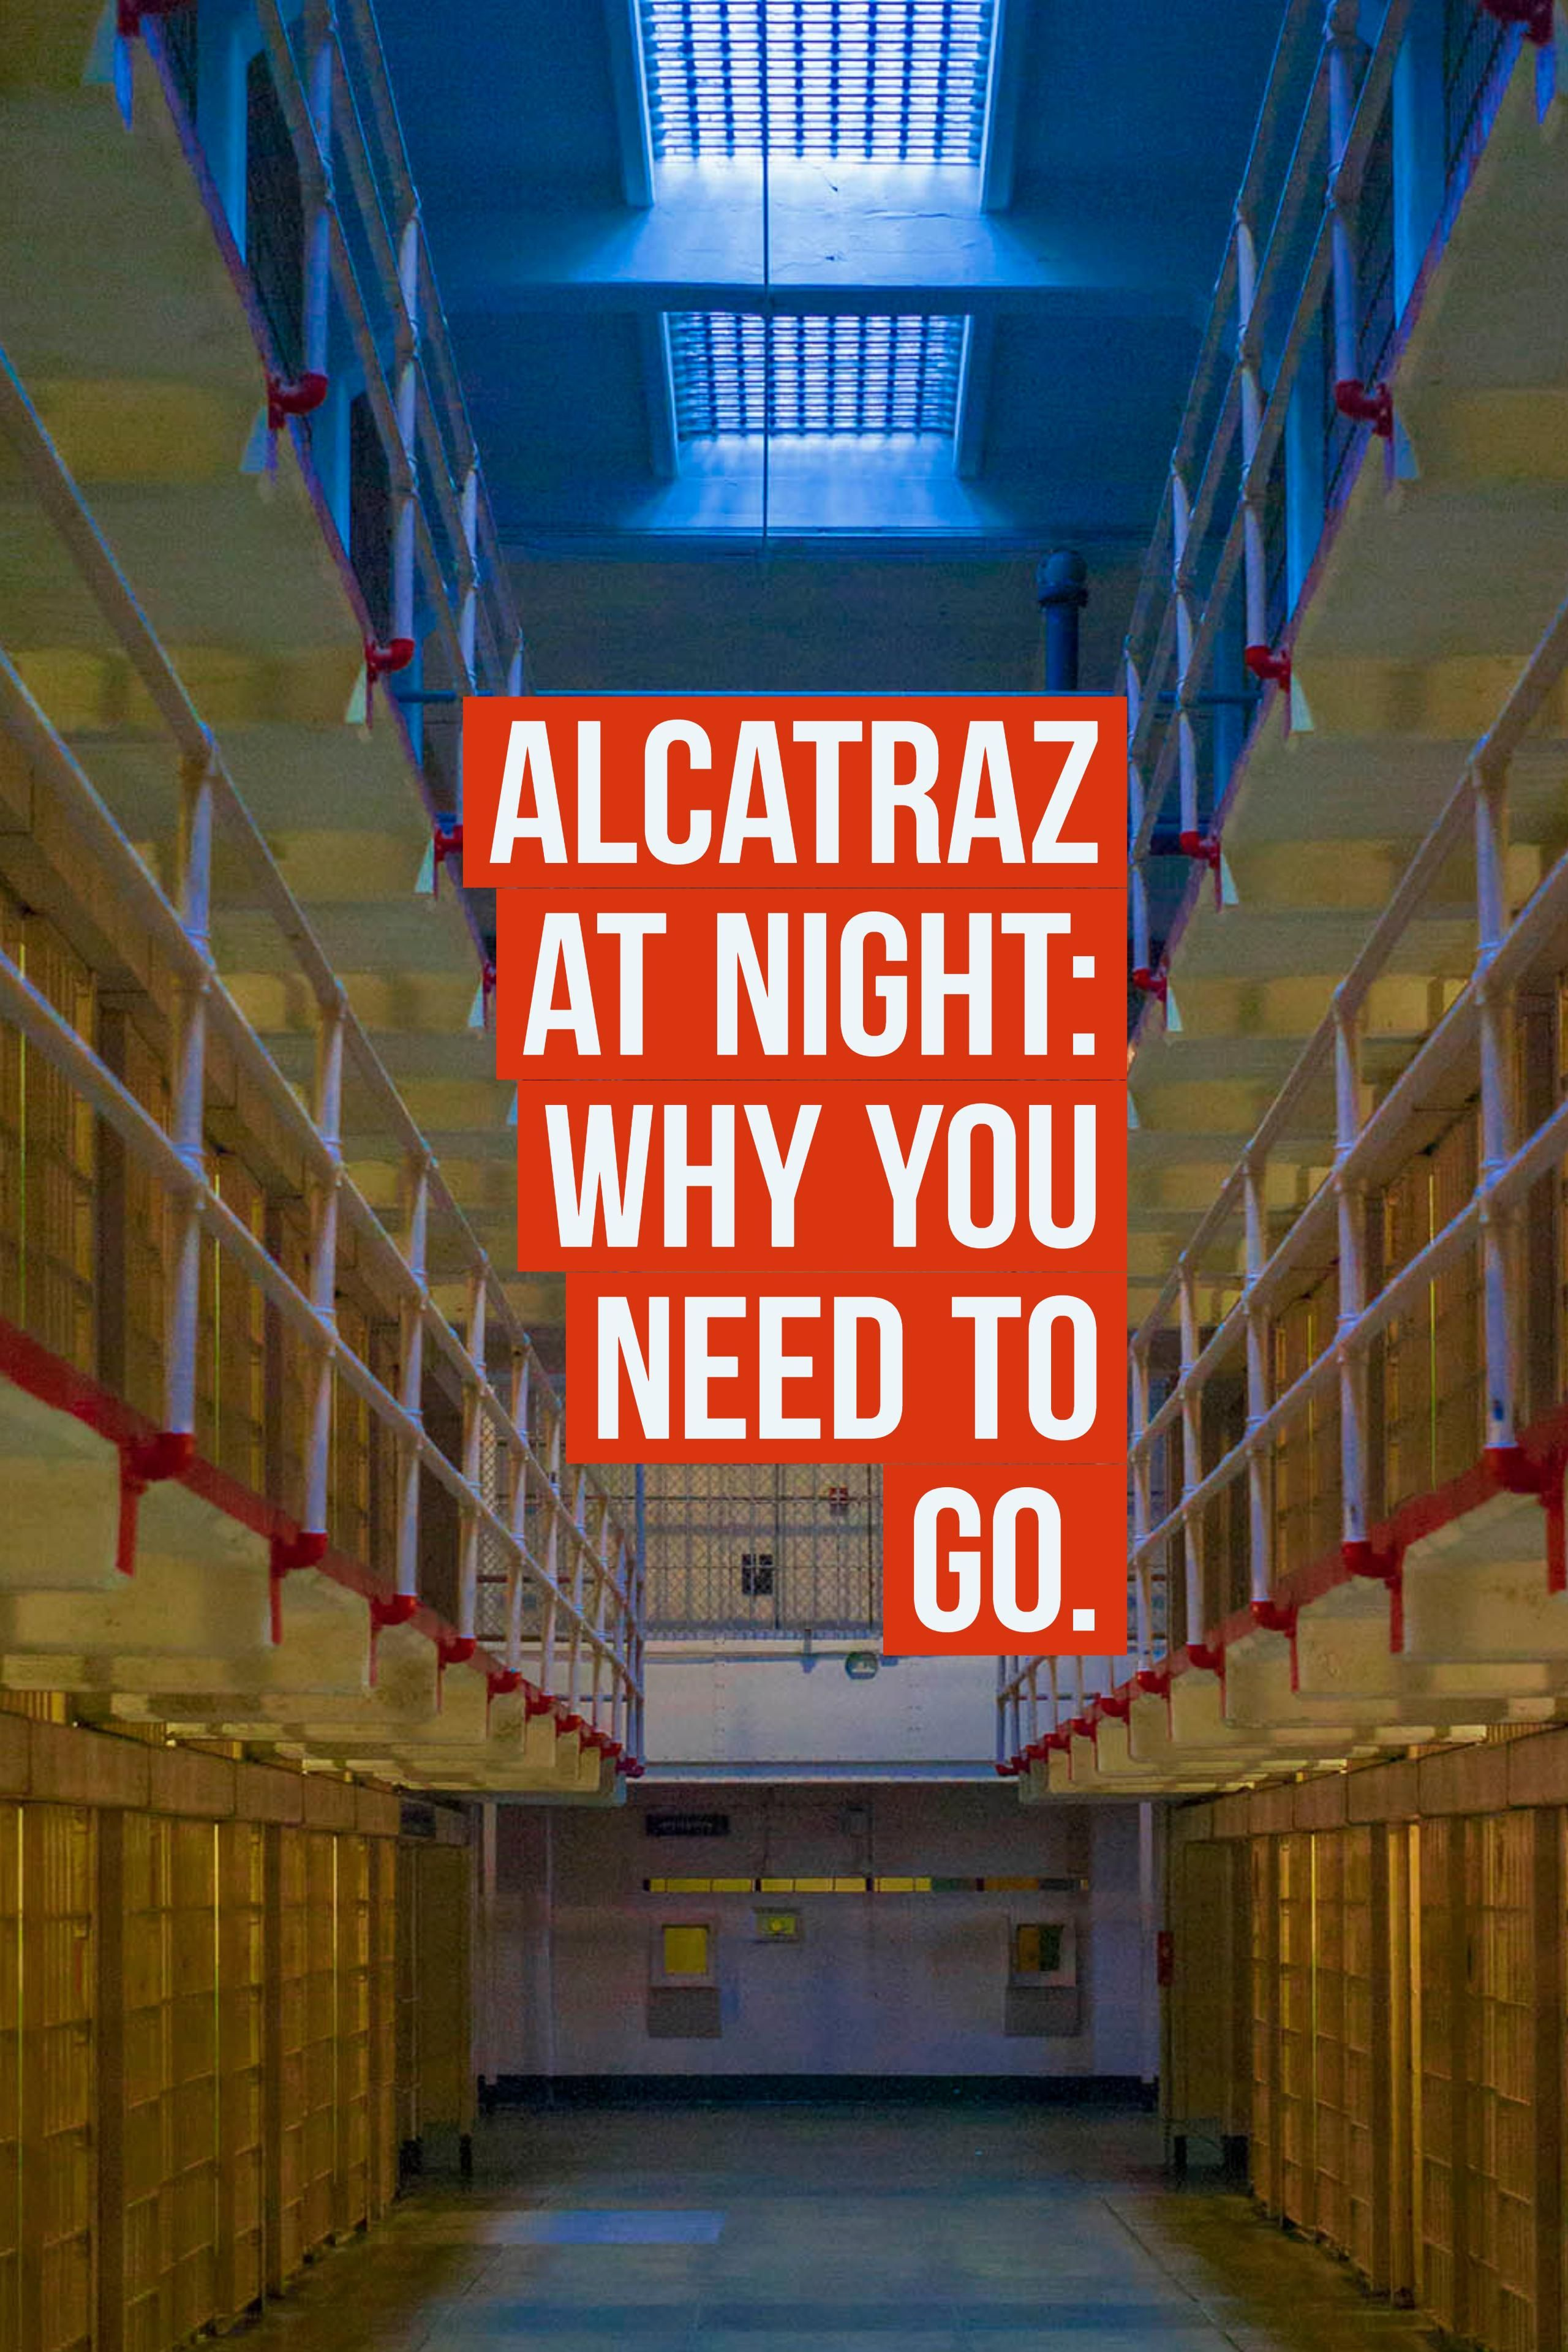 Getting Spooked By Alcatraz At Night My Alcatraz Night Tour Review Alcatraz Alcatraz Tour Alcatraz Prison